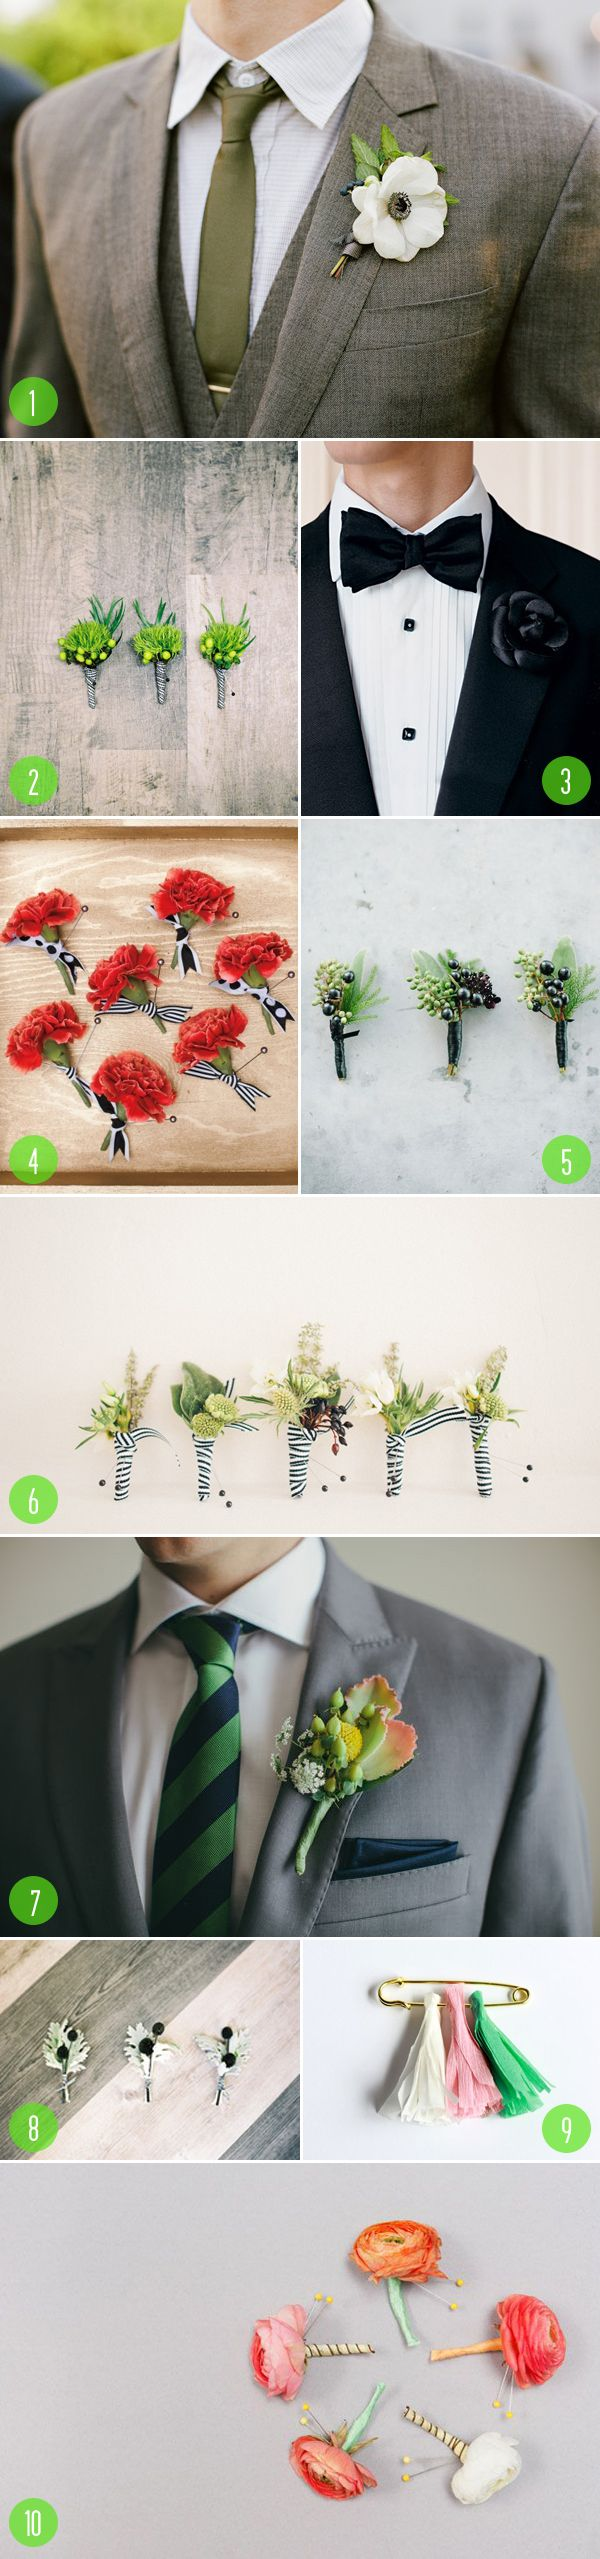 Top 10: Boutonnieres   We choose #7!